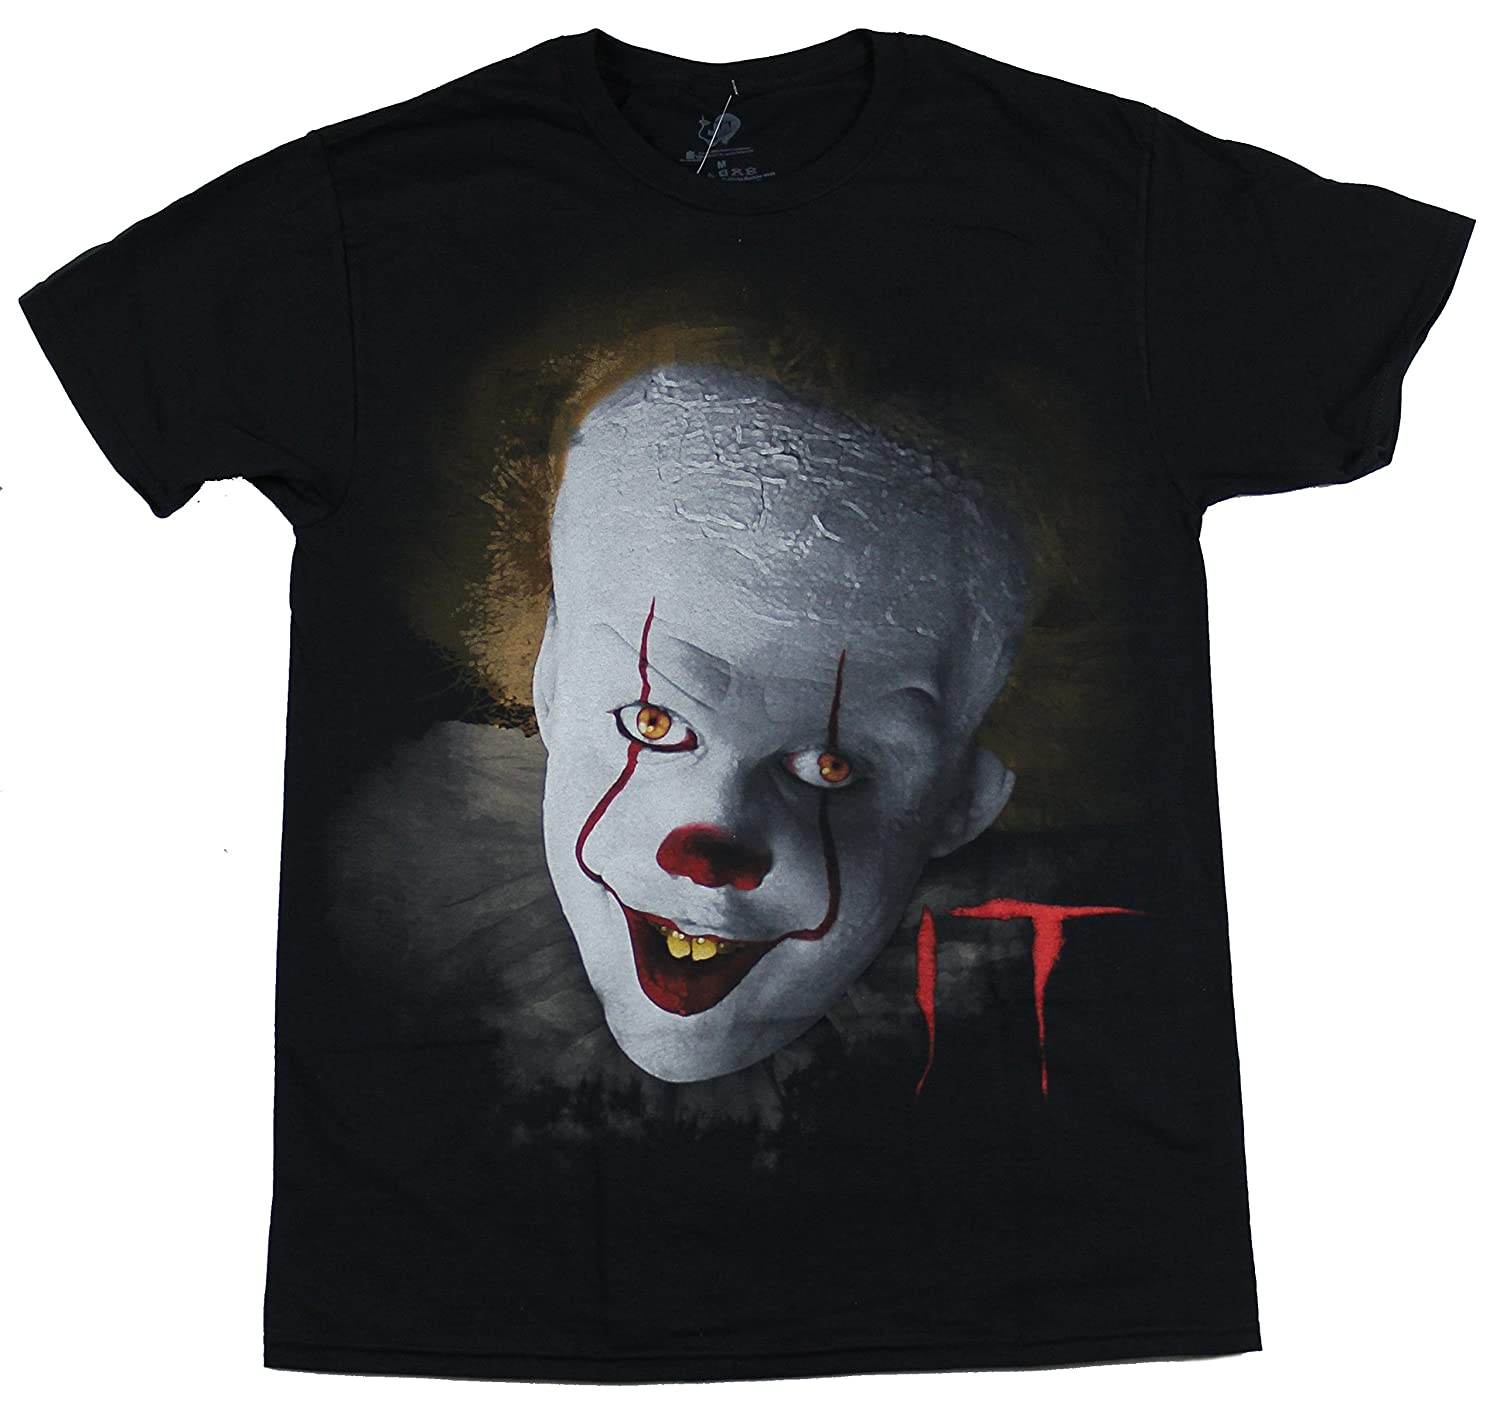 Changes It Pennywise Illustrated Face Graphic T-Shirt